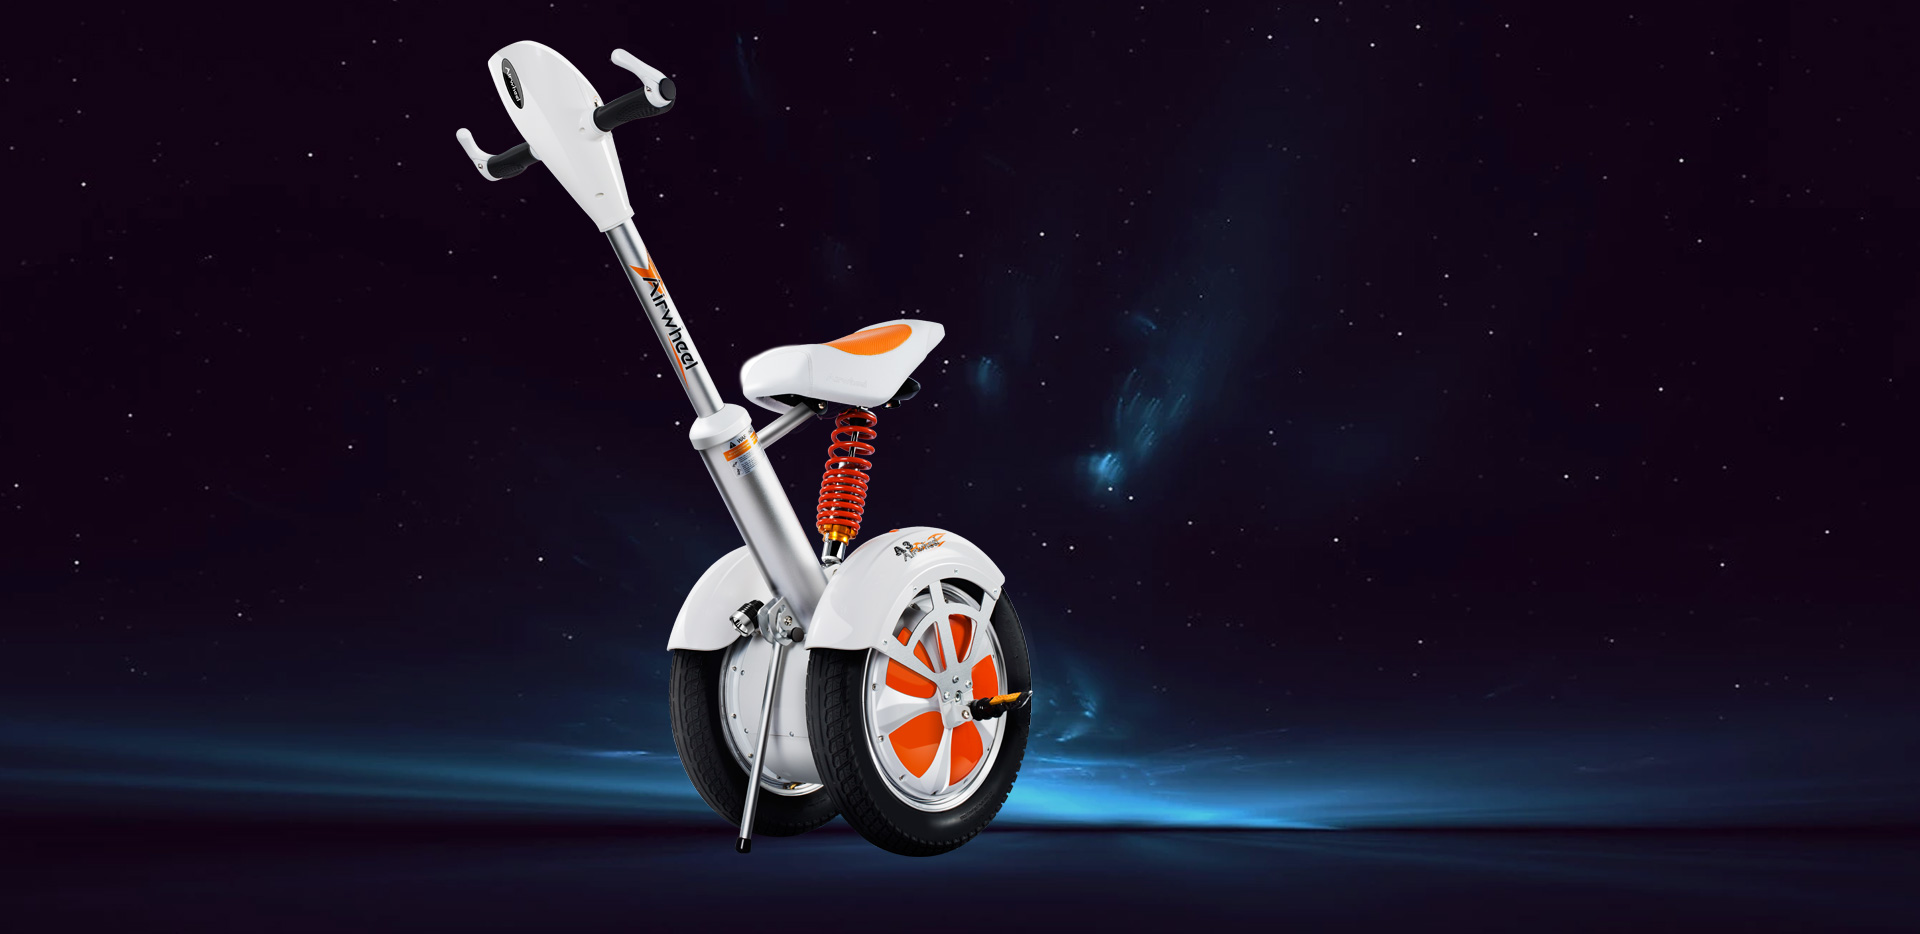 Airwheel Self-balancing Electric Scooter A3, an era of new concept scooter